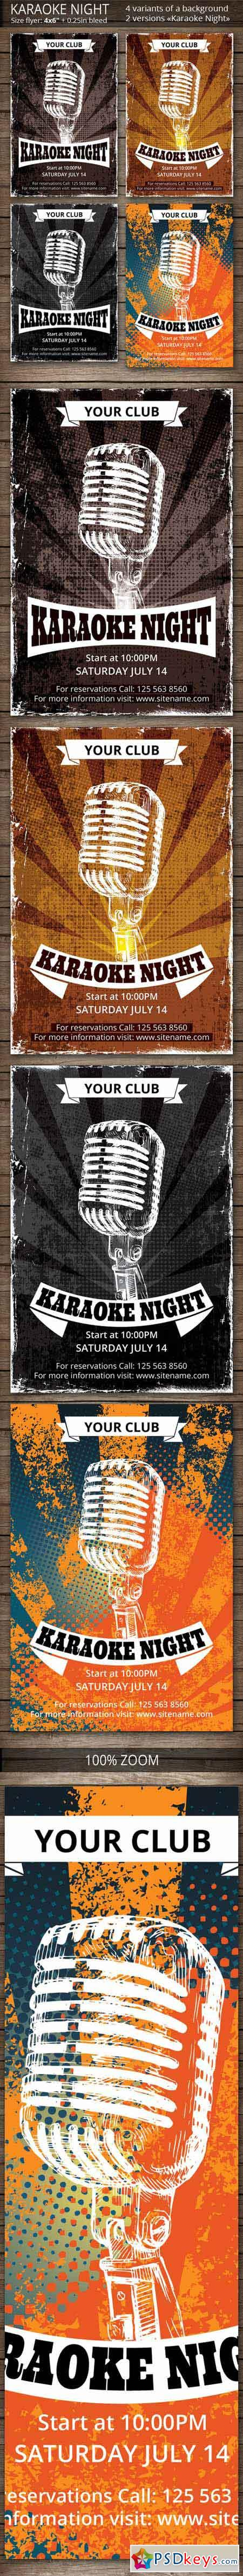 Karaoke Night Party Flyer 388757